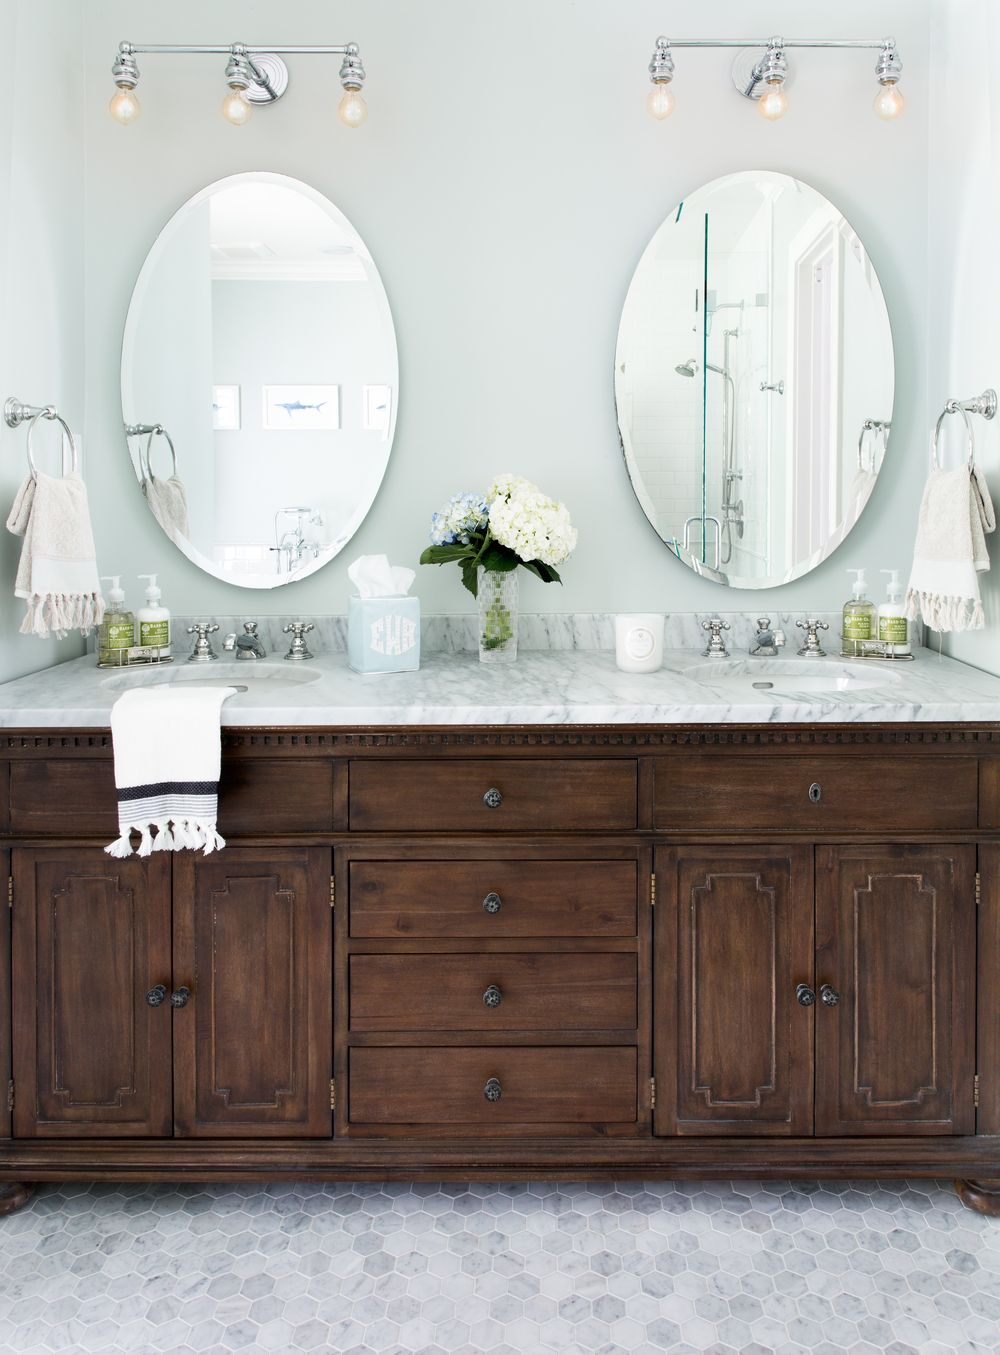 Mixing the old and the new in this bathroom design Jennifer Barron